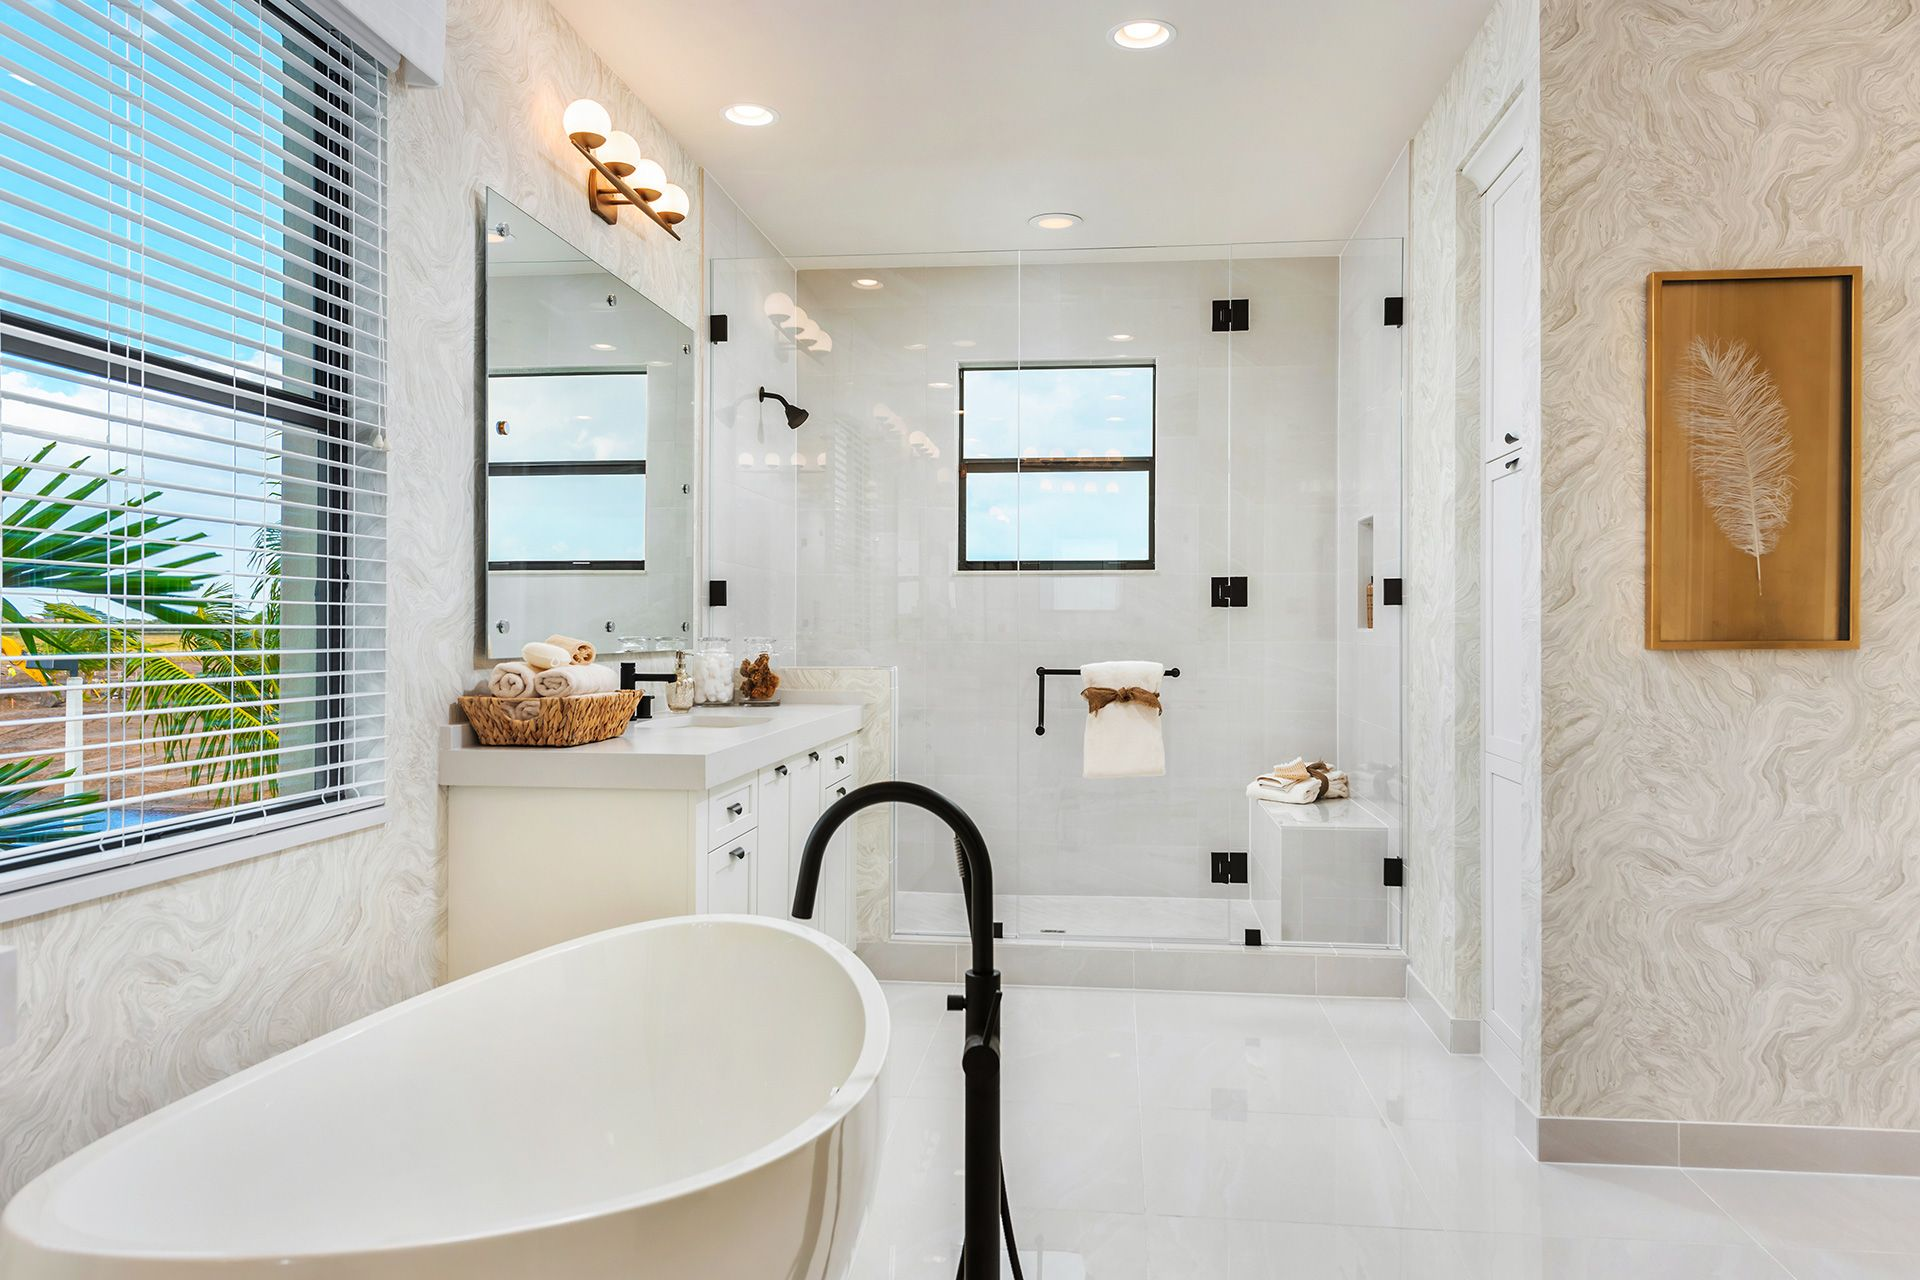 Bathroom featured in the Mariana By GL Homes in Palm Beach County, FL